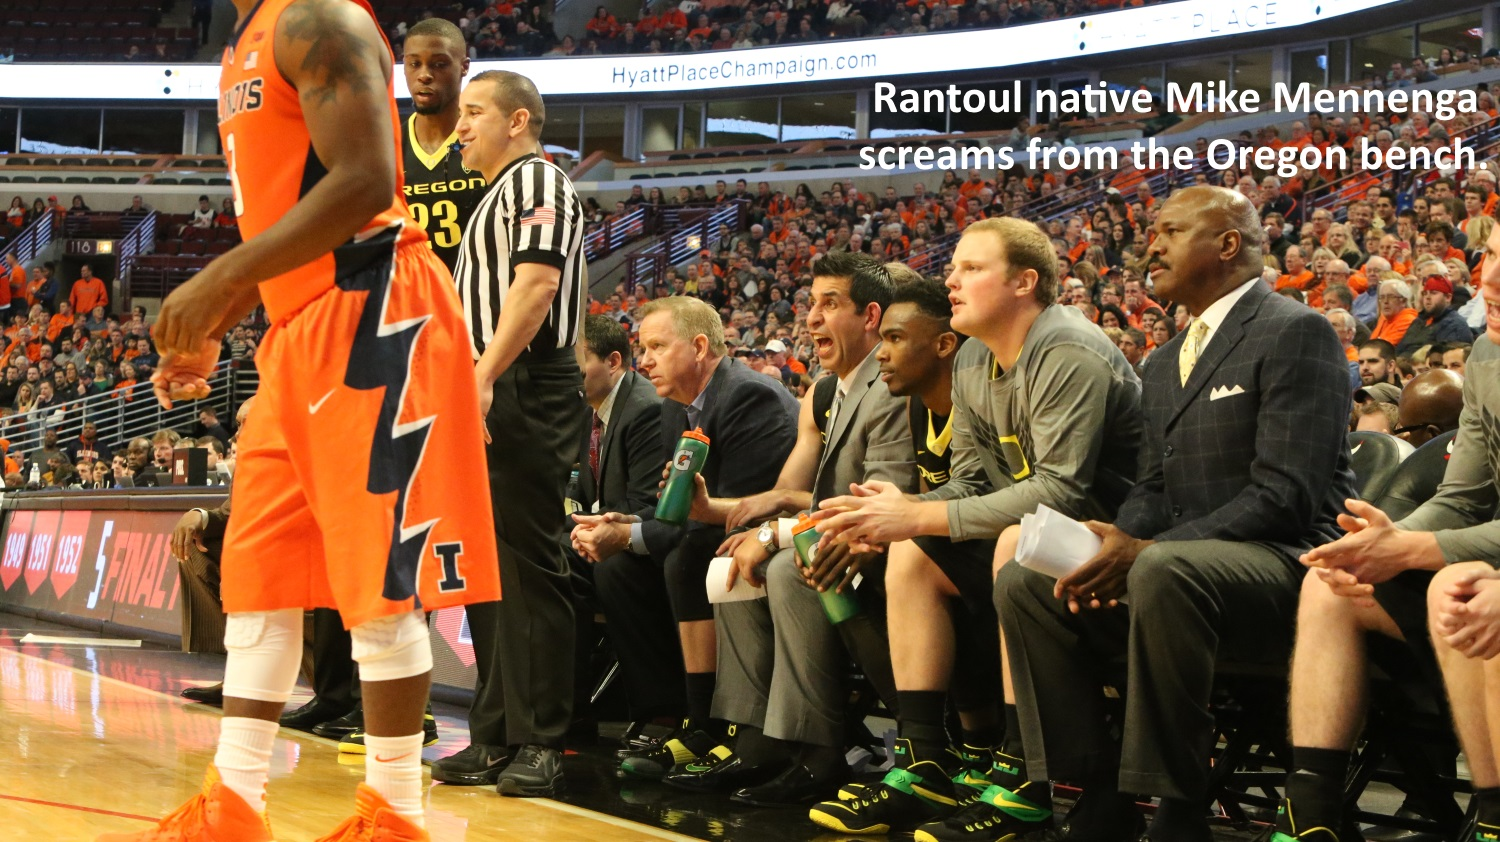 Mike Mennenga screams from Oregon bench